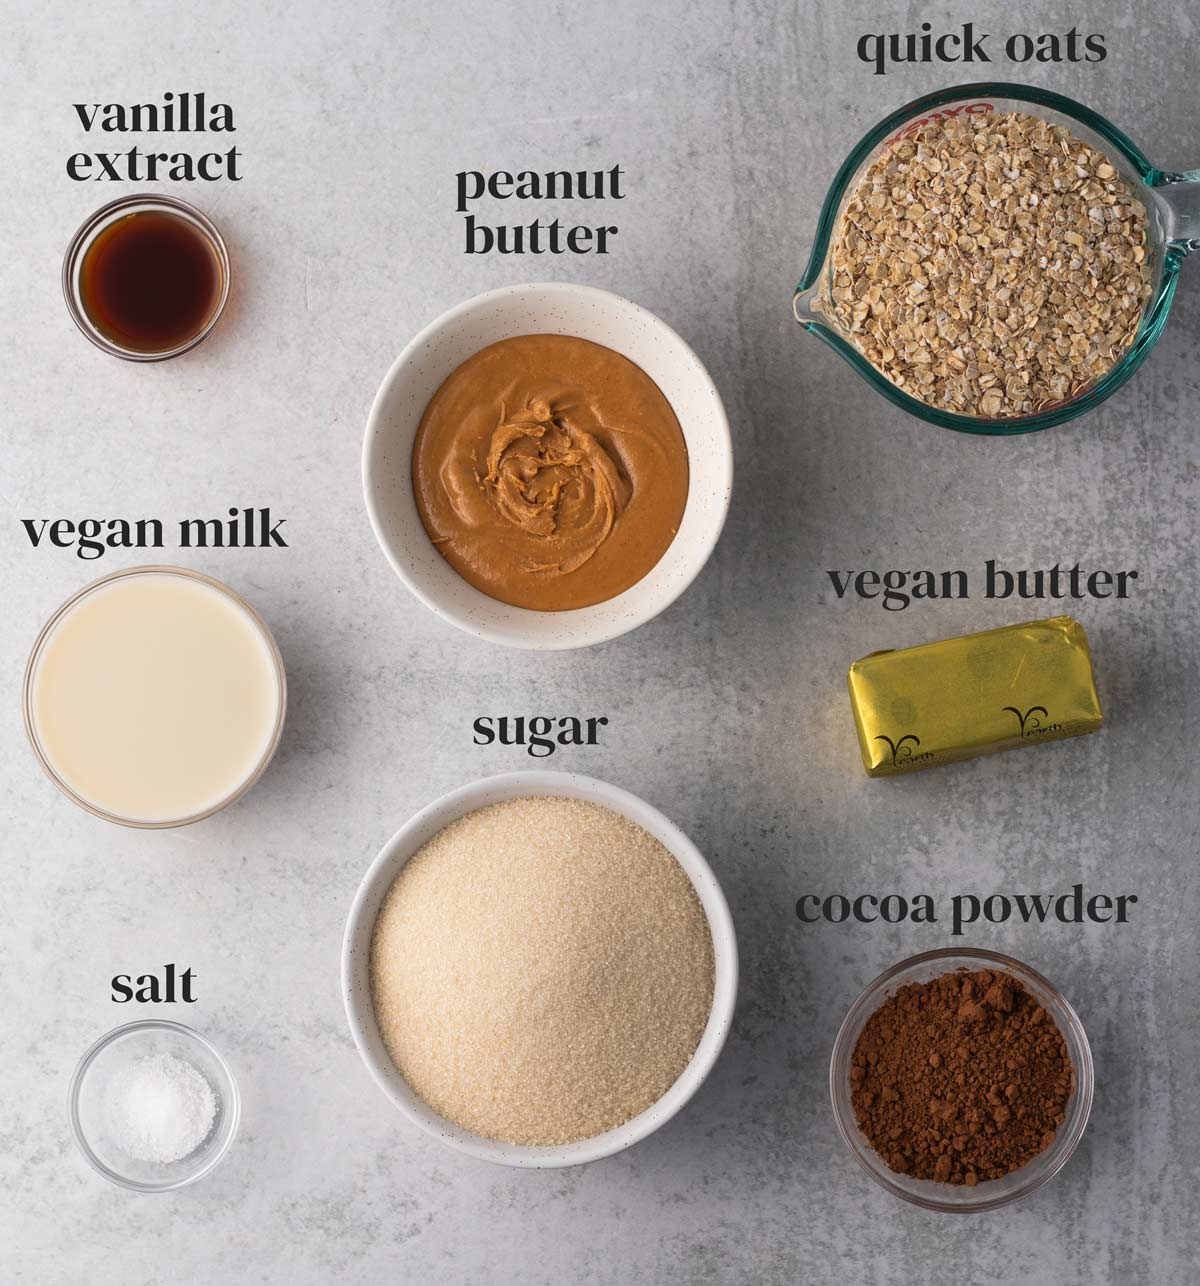 ingredients for no-bake vegan cookies with oats, peanut butter, vanilla, sugar, chocolate, and salt